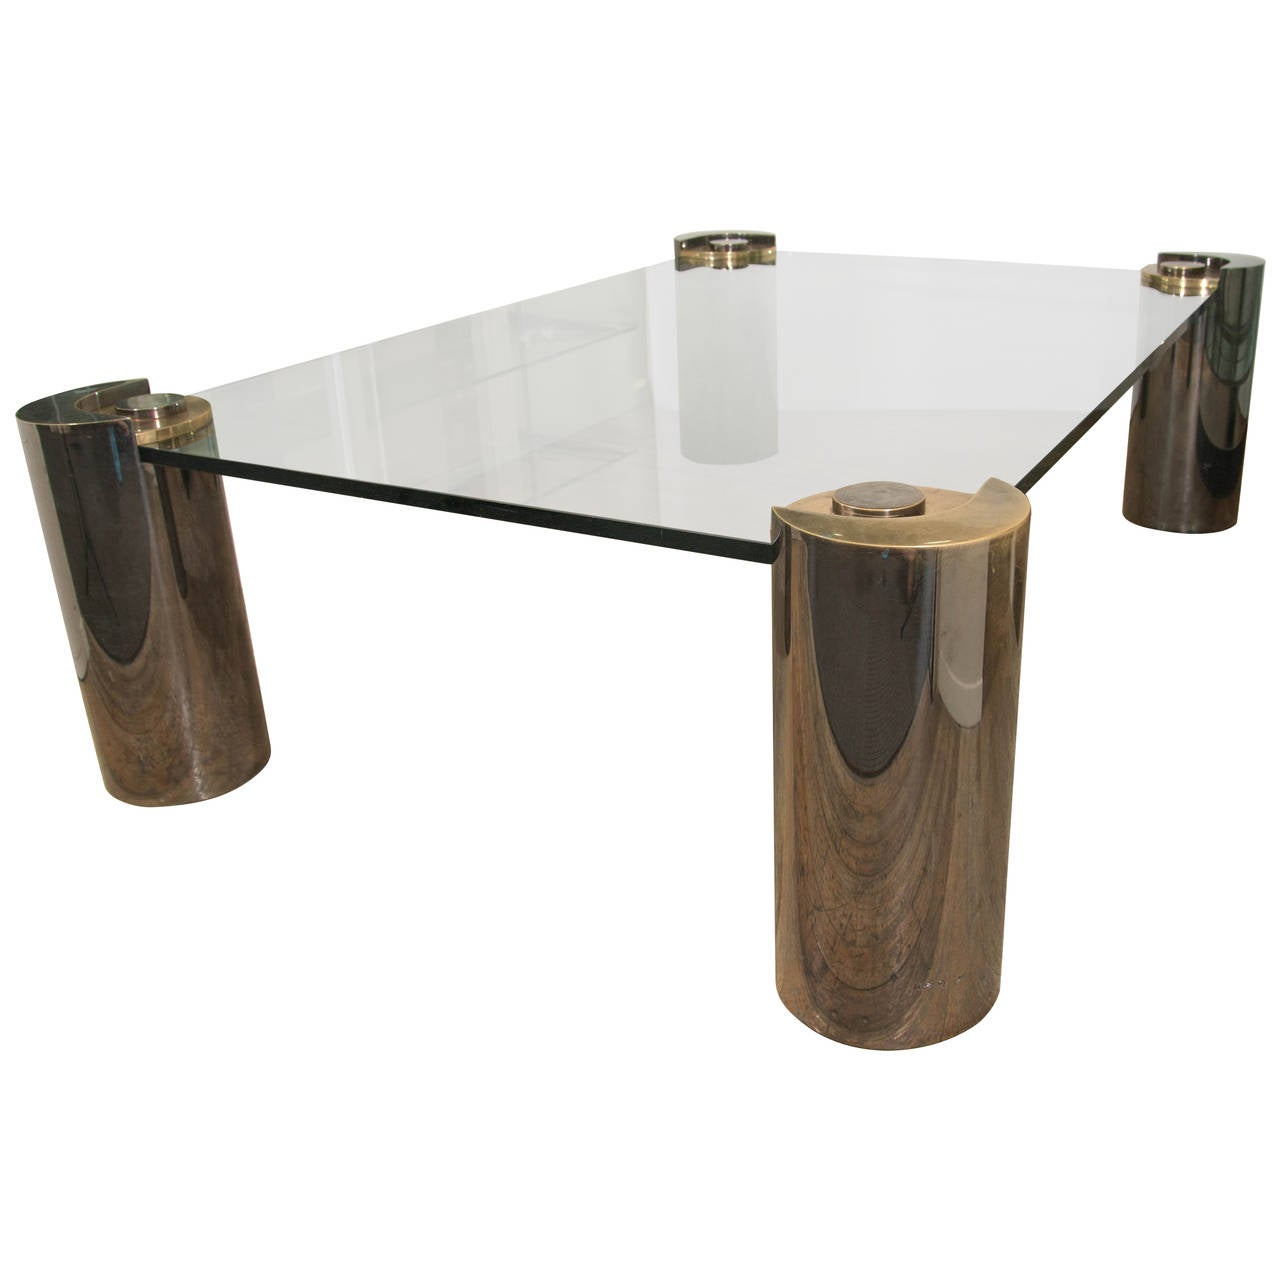 Coffee Table Legs Brass: Karl Springer Glass Top Coffee Table With Cylindrical